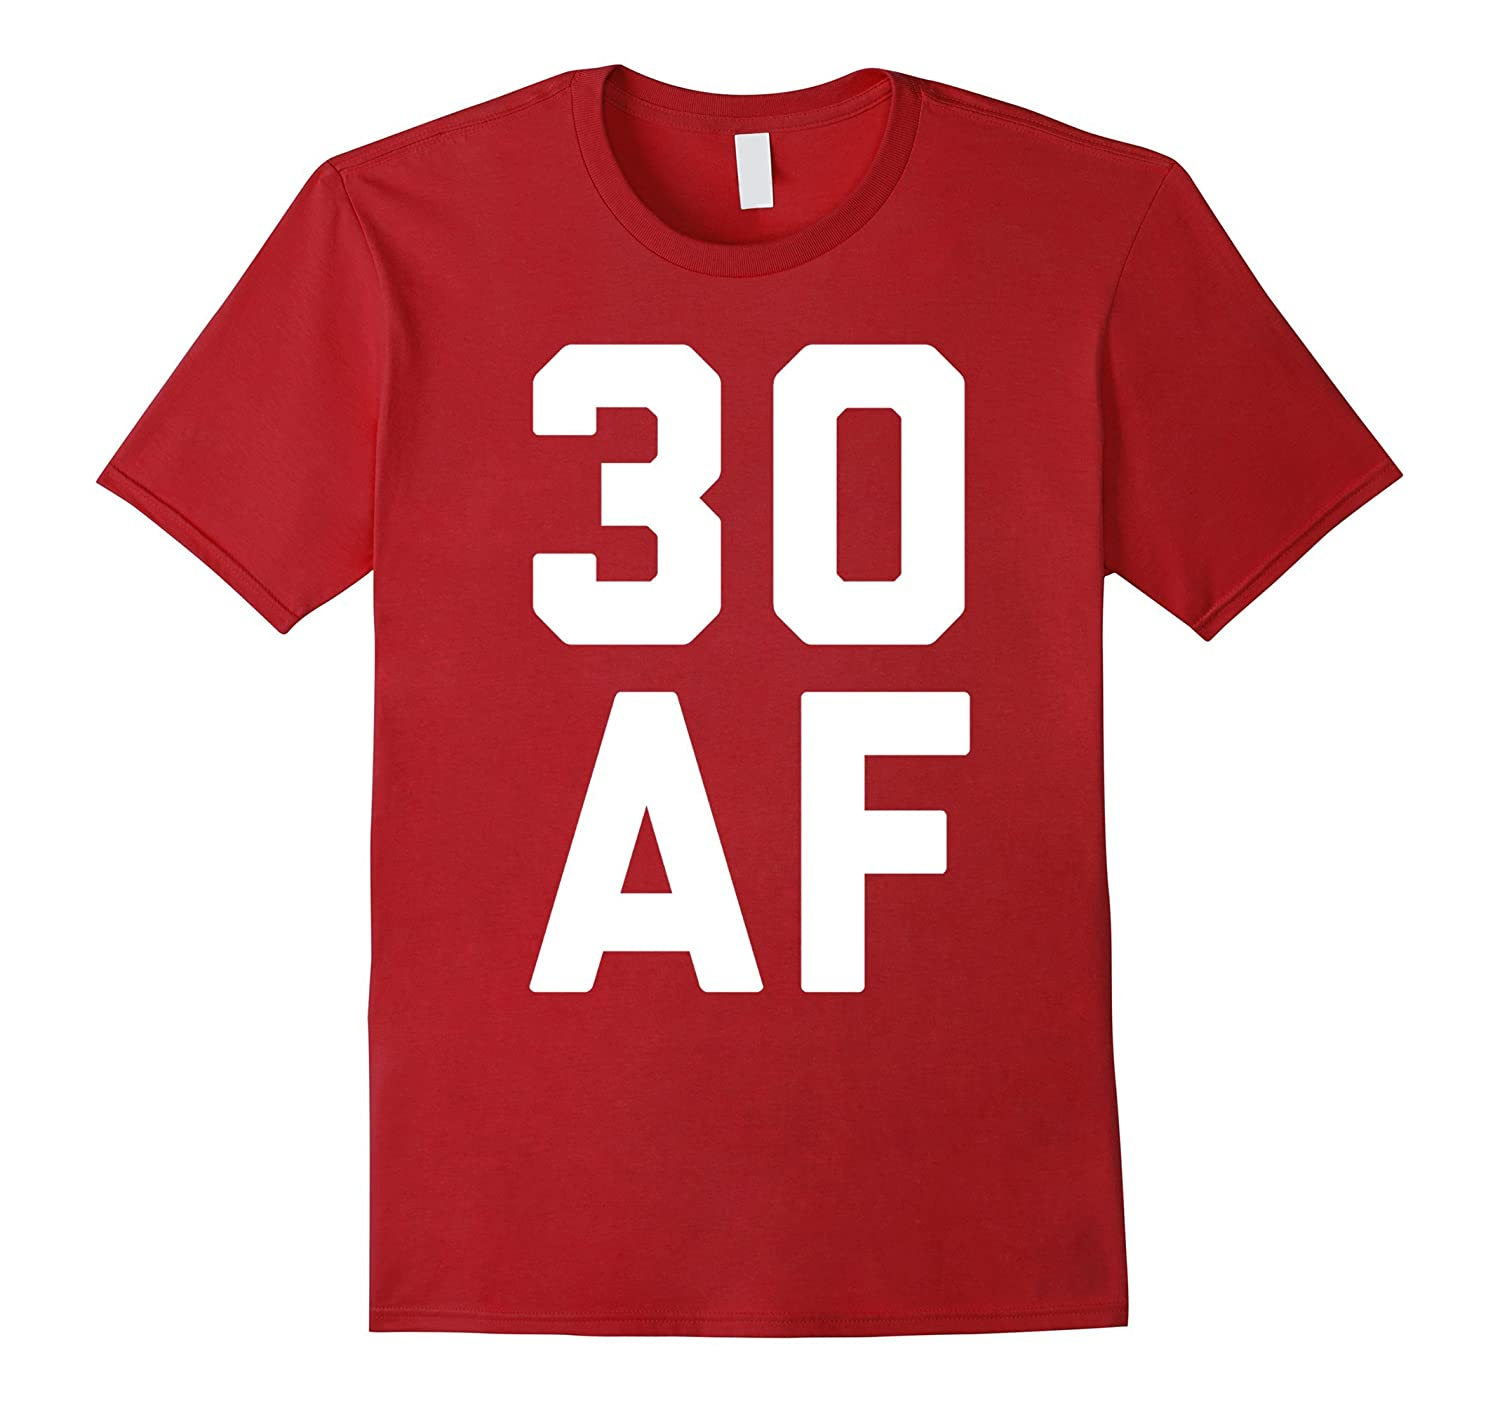 30 AF T-Shirt - 30th Birthday Shirt Men Women Thirty Gift-4LVS